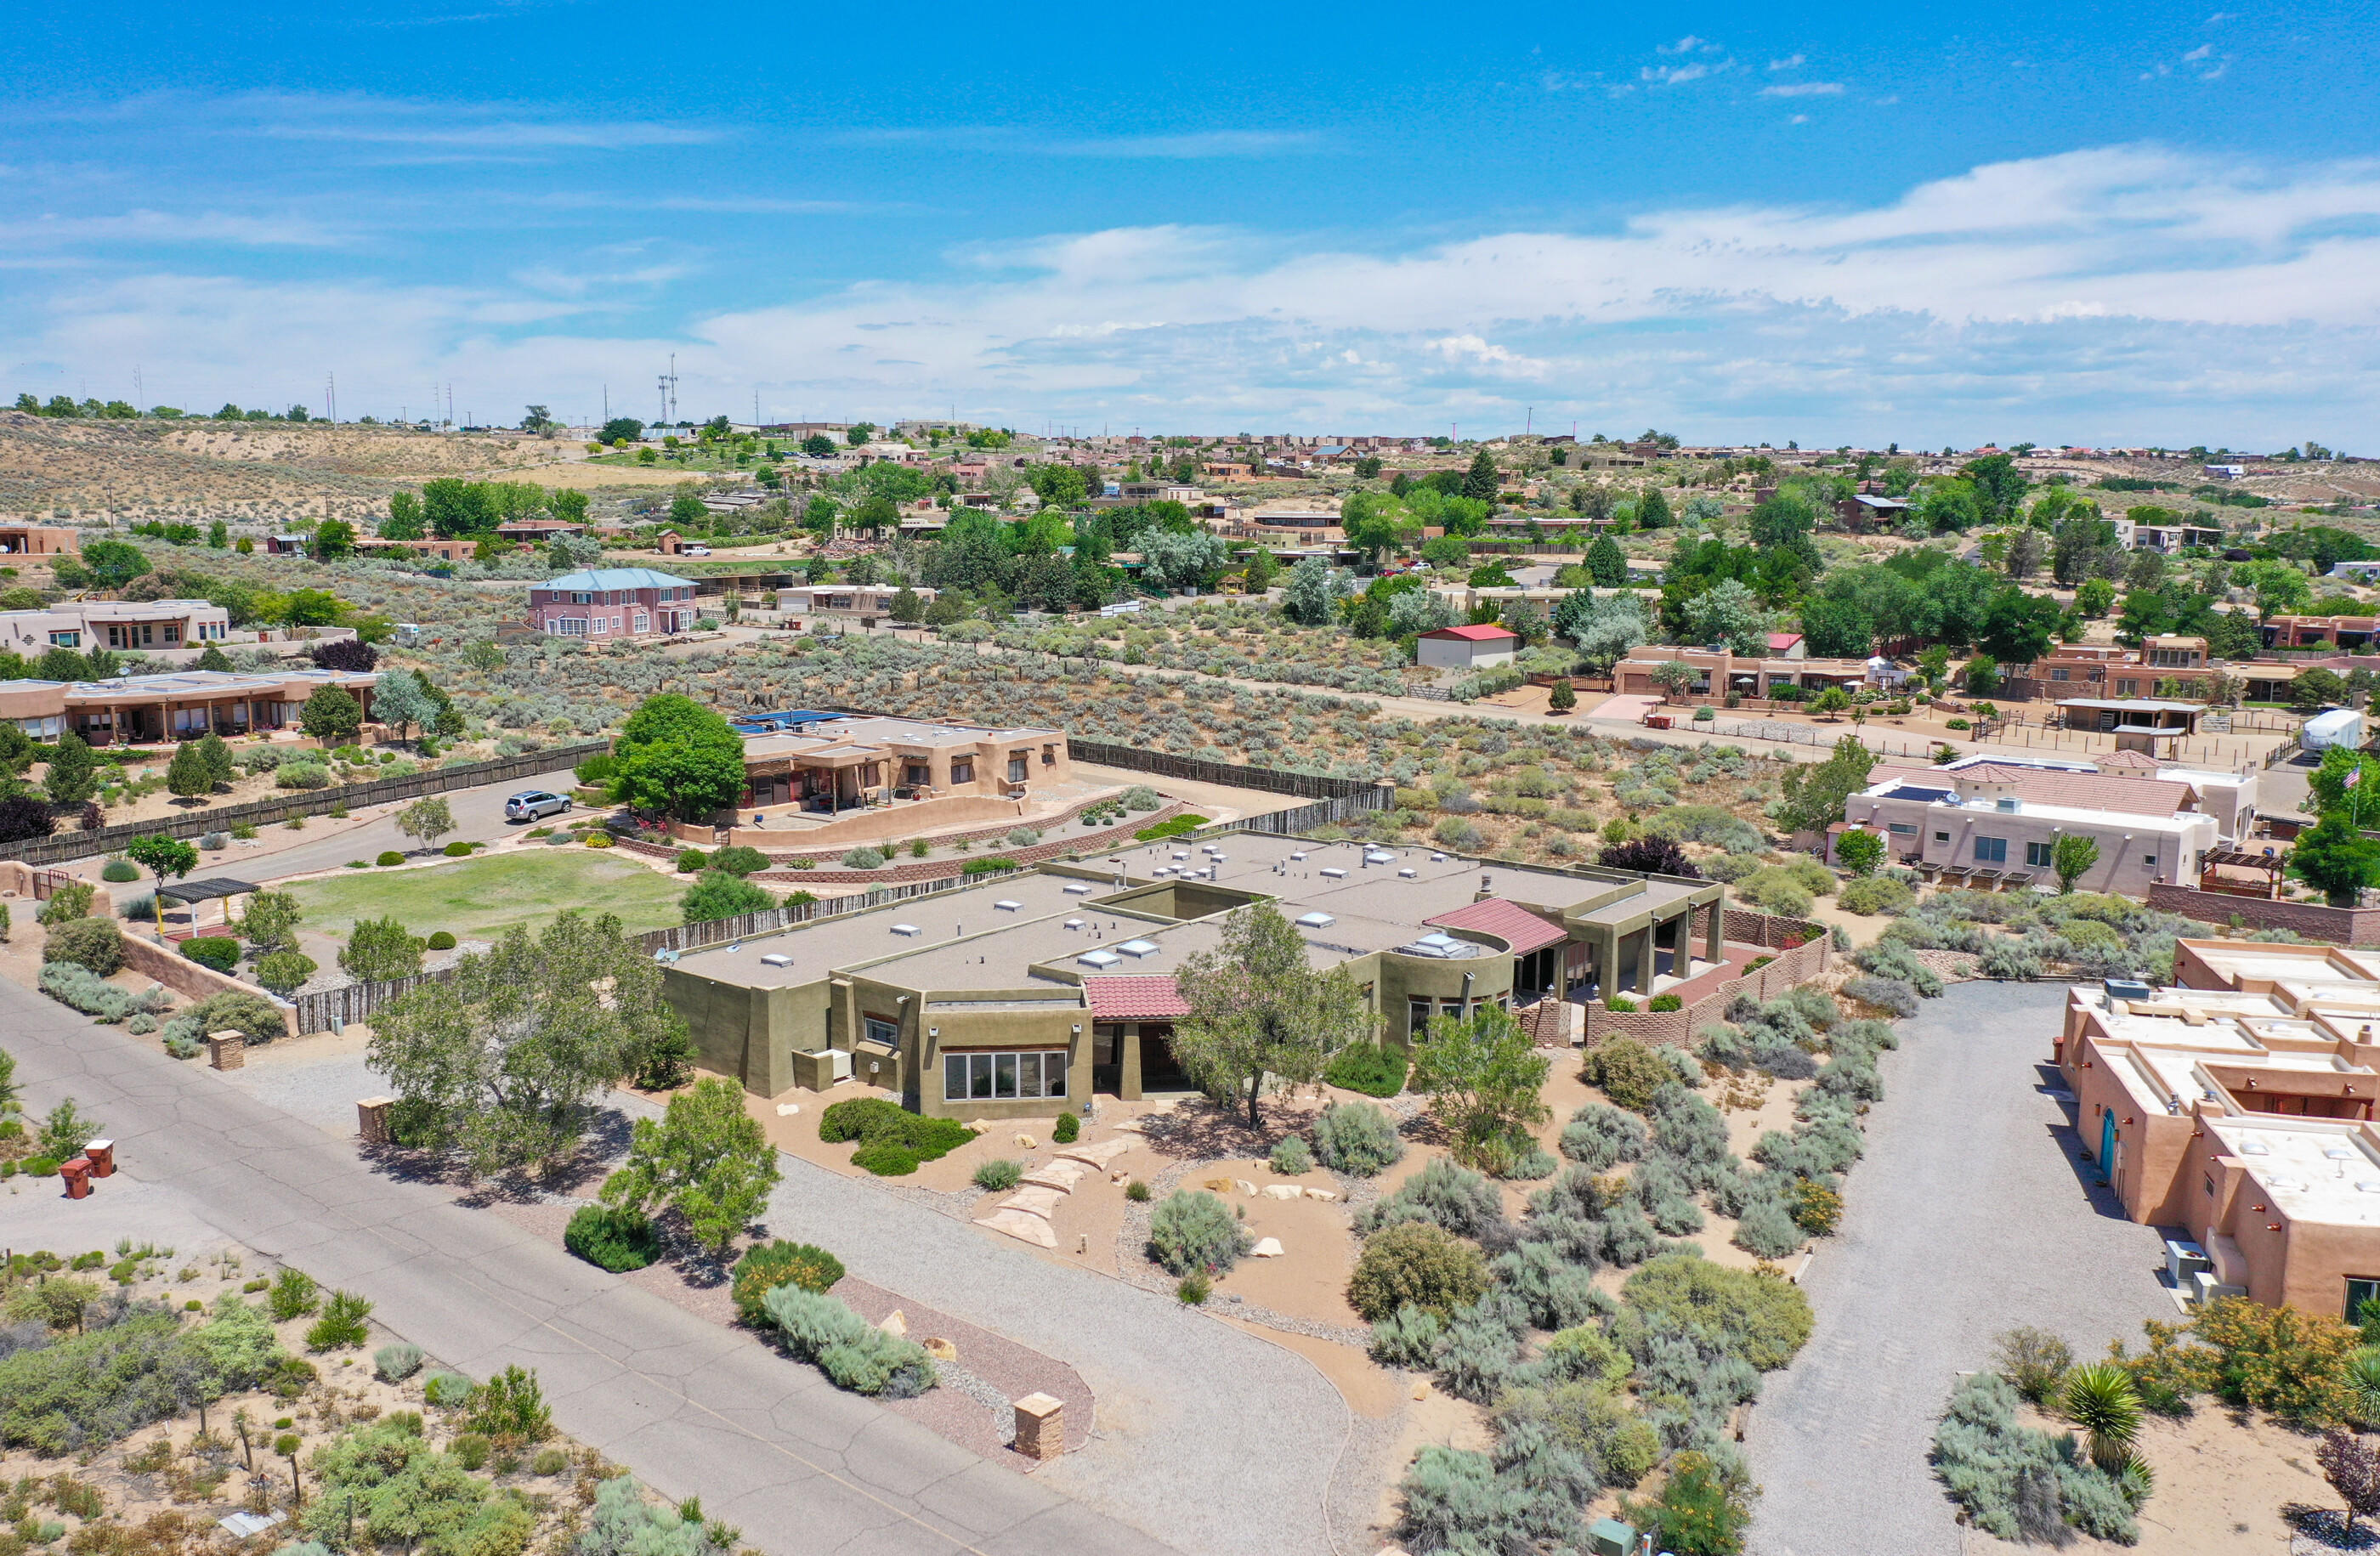 Stunning, custom built home on .89 acres in Corrales w/ beautiful mountain & bosque views! This sprawling floorplan has it all - formal living & dining rooms, gourmet kitchen, office/study, family room, media room, game/exercise room, master suite, 2 additional bedrooms each w/ own bath, courtyards, 7 car garage. Kitchen has large island w/ 2 five-burner cooktops & prep sink, SS appliances including 2 double ovens & a sub-zero refrigerator, 3 pantries, large breakfast nook. Master retreat offers sitting area, 2 gas log fireplaces, his/hers vanities, 2 separate showers, large jacuzzi tub, his/hers walk-in closets, dressing/massage area. Interior & exterior courtyards provide plenty of space for outdoor entertaining. See attached additional property info for list of amenities and features